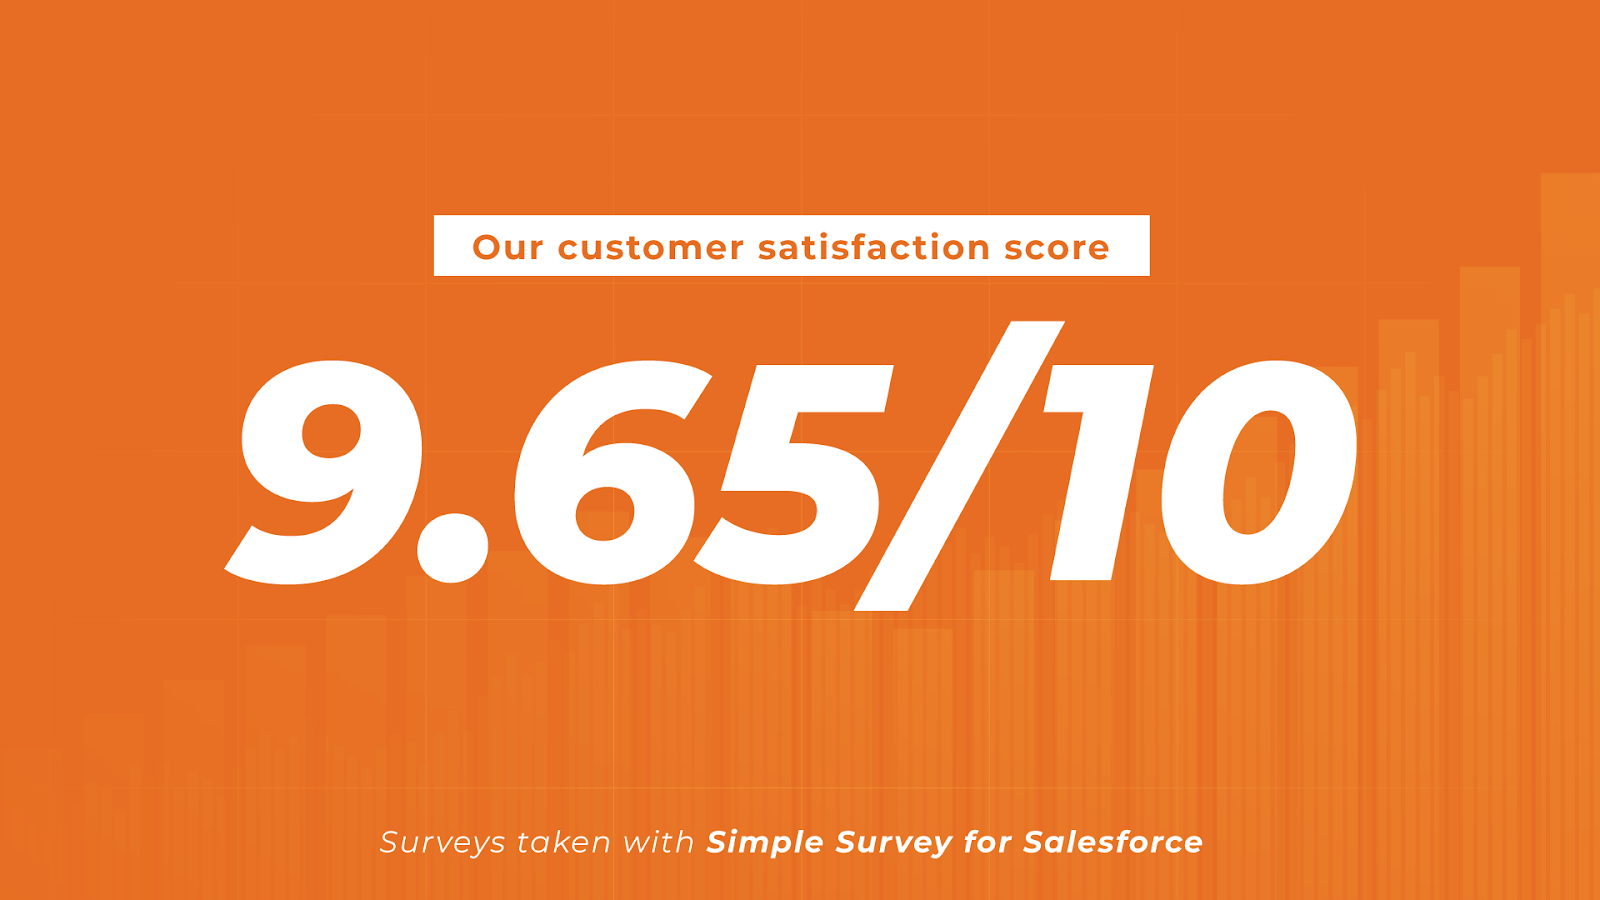 Our customer satisfaction score 9.65/10. Surveys taken with Simple Survey for Salesforce.